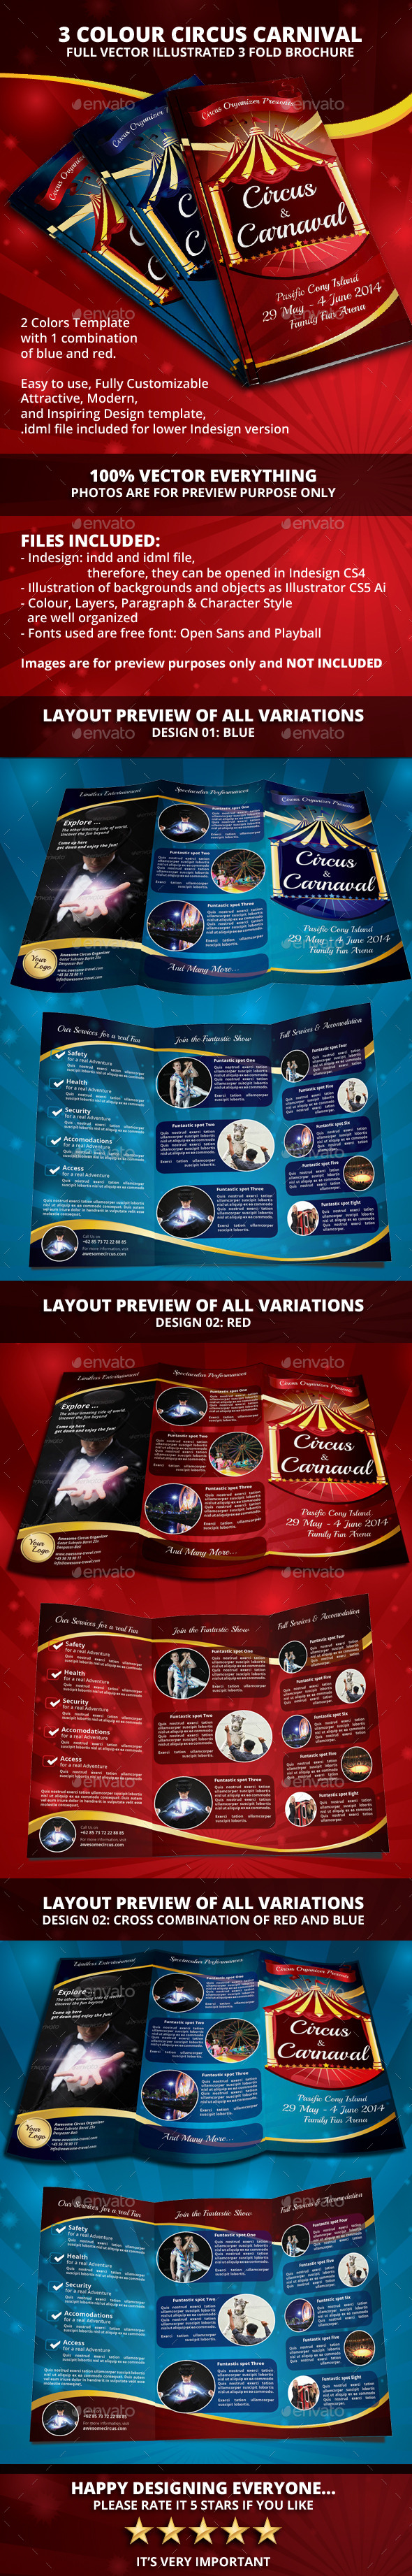 GraphicRiver Circus Carnival 3 colour Trifold Brochure 9966224